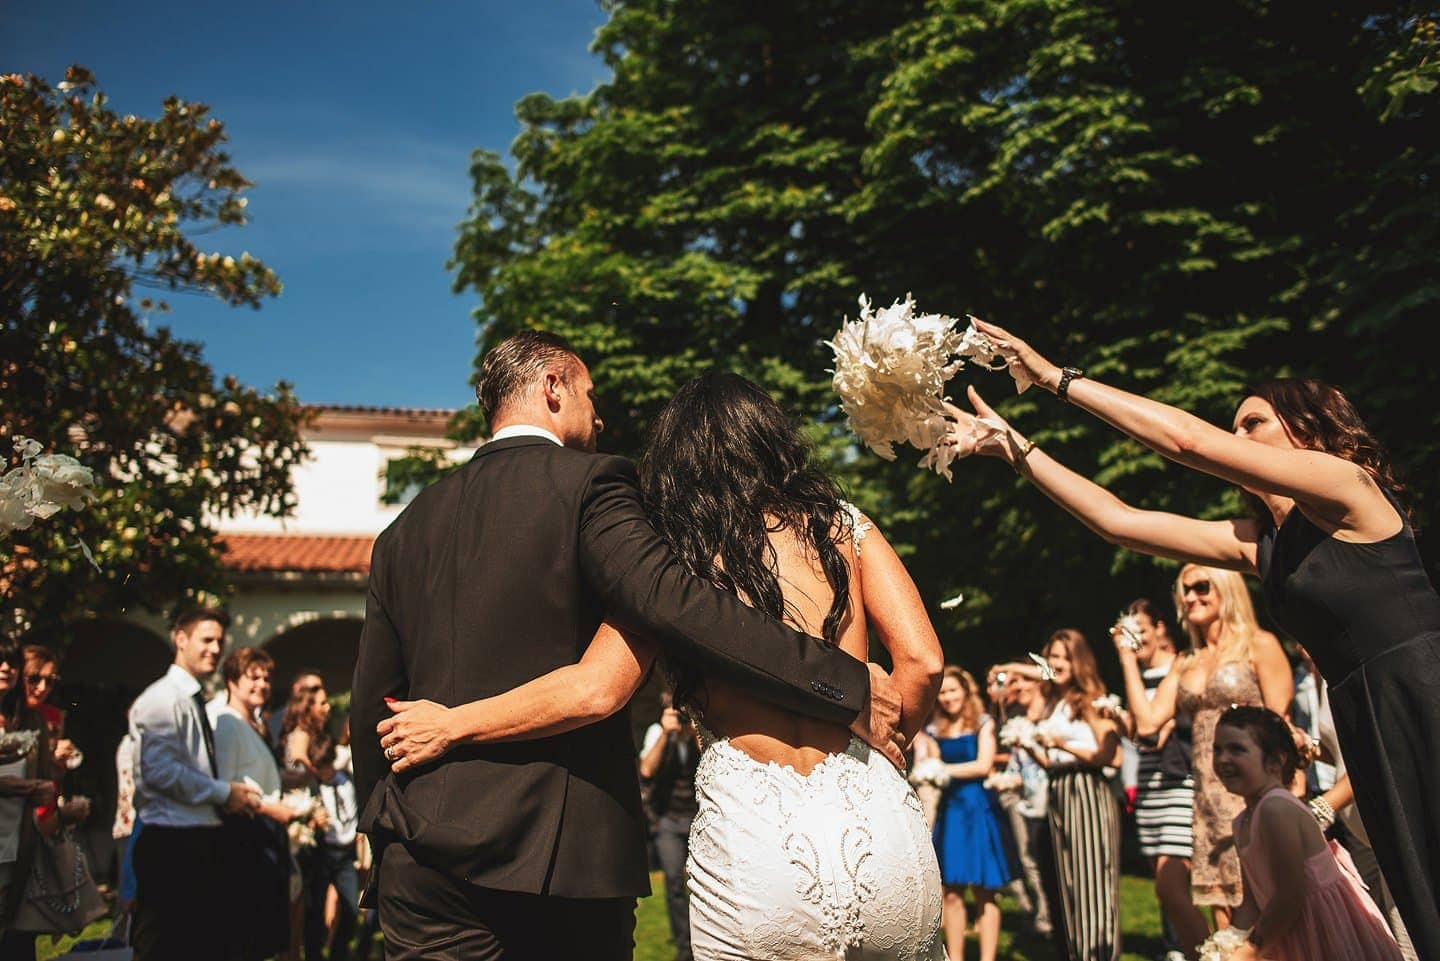 Best Of 2018 Wedding Photography by Aleks & Irena Kus 122